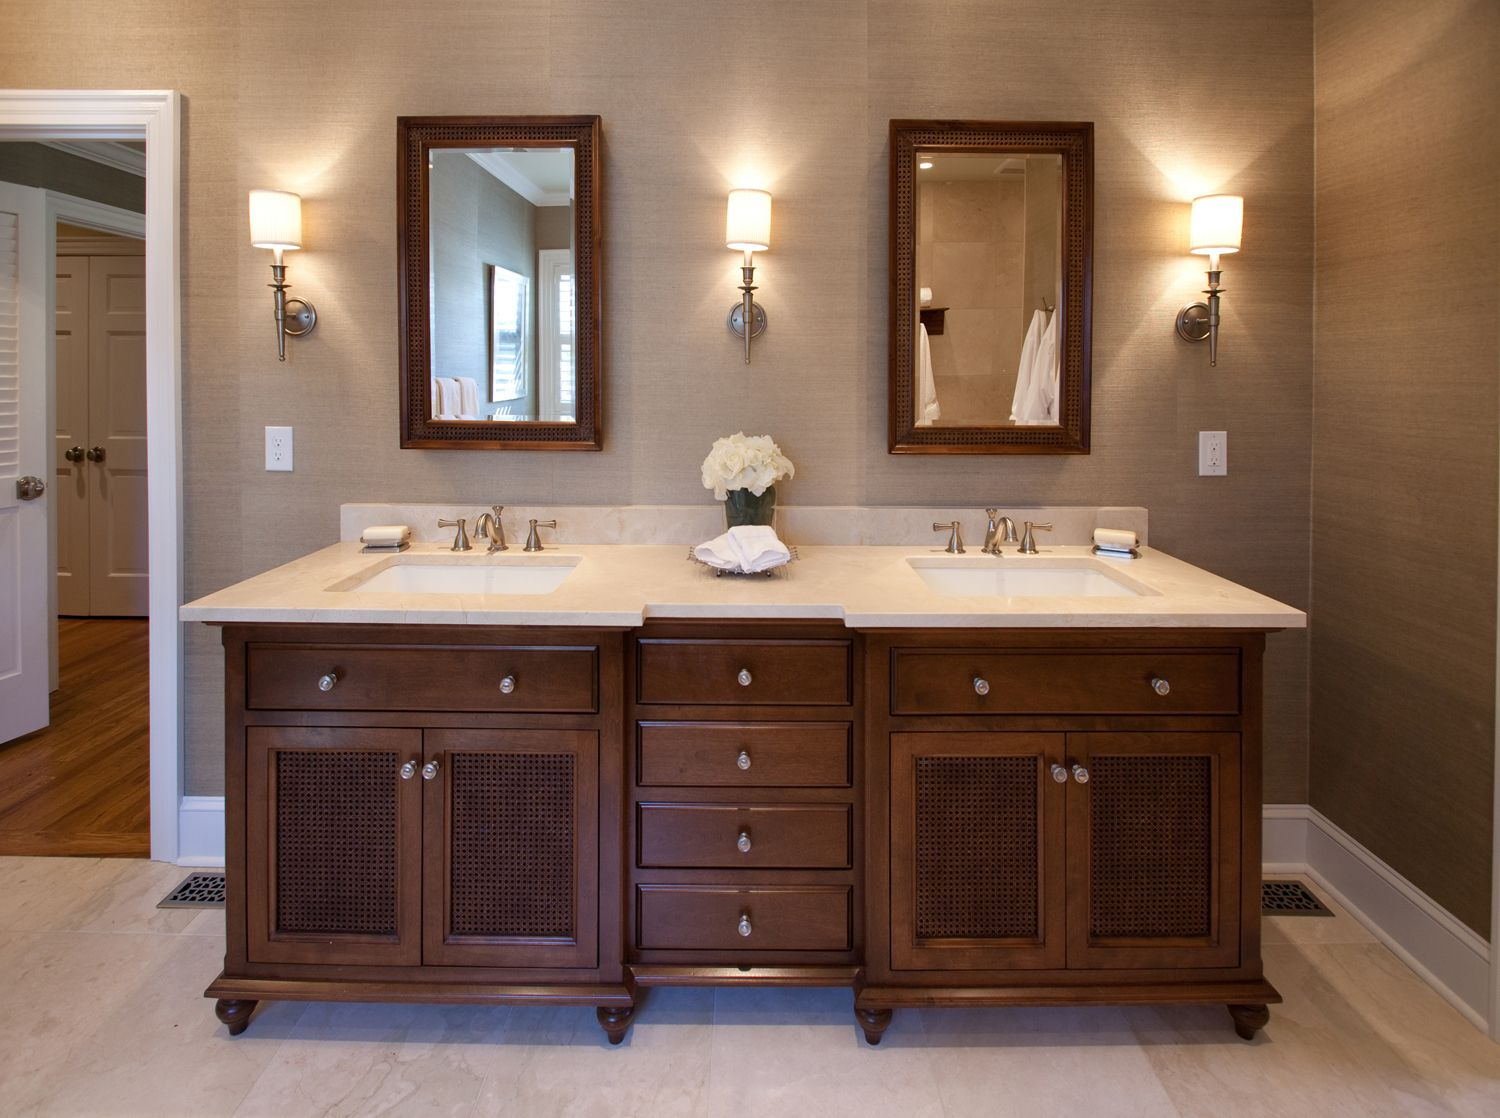 British colonial master bathroom double vanity for Bathroom vanity decor pinterest